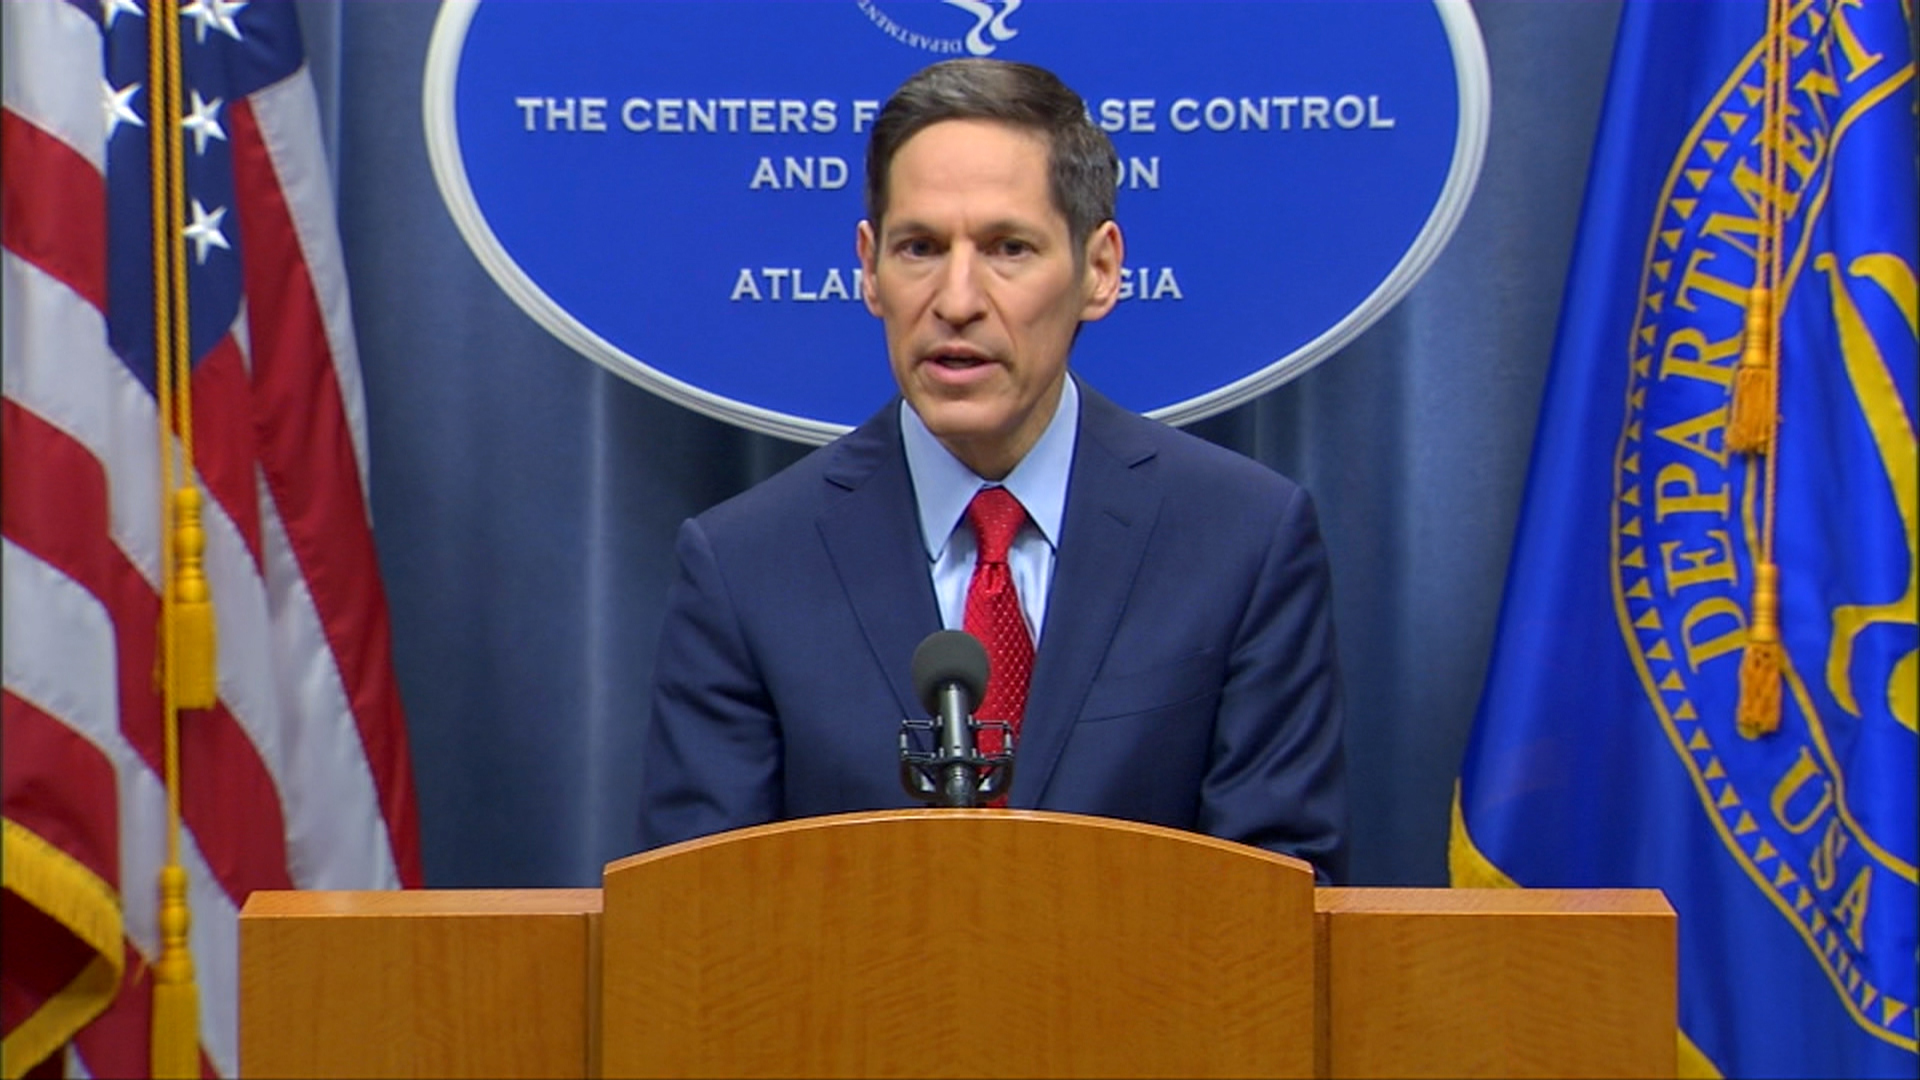 CDC Director on Ebola: 'Even a Single Infection is Unacceptable'